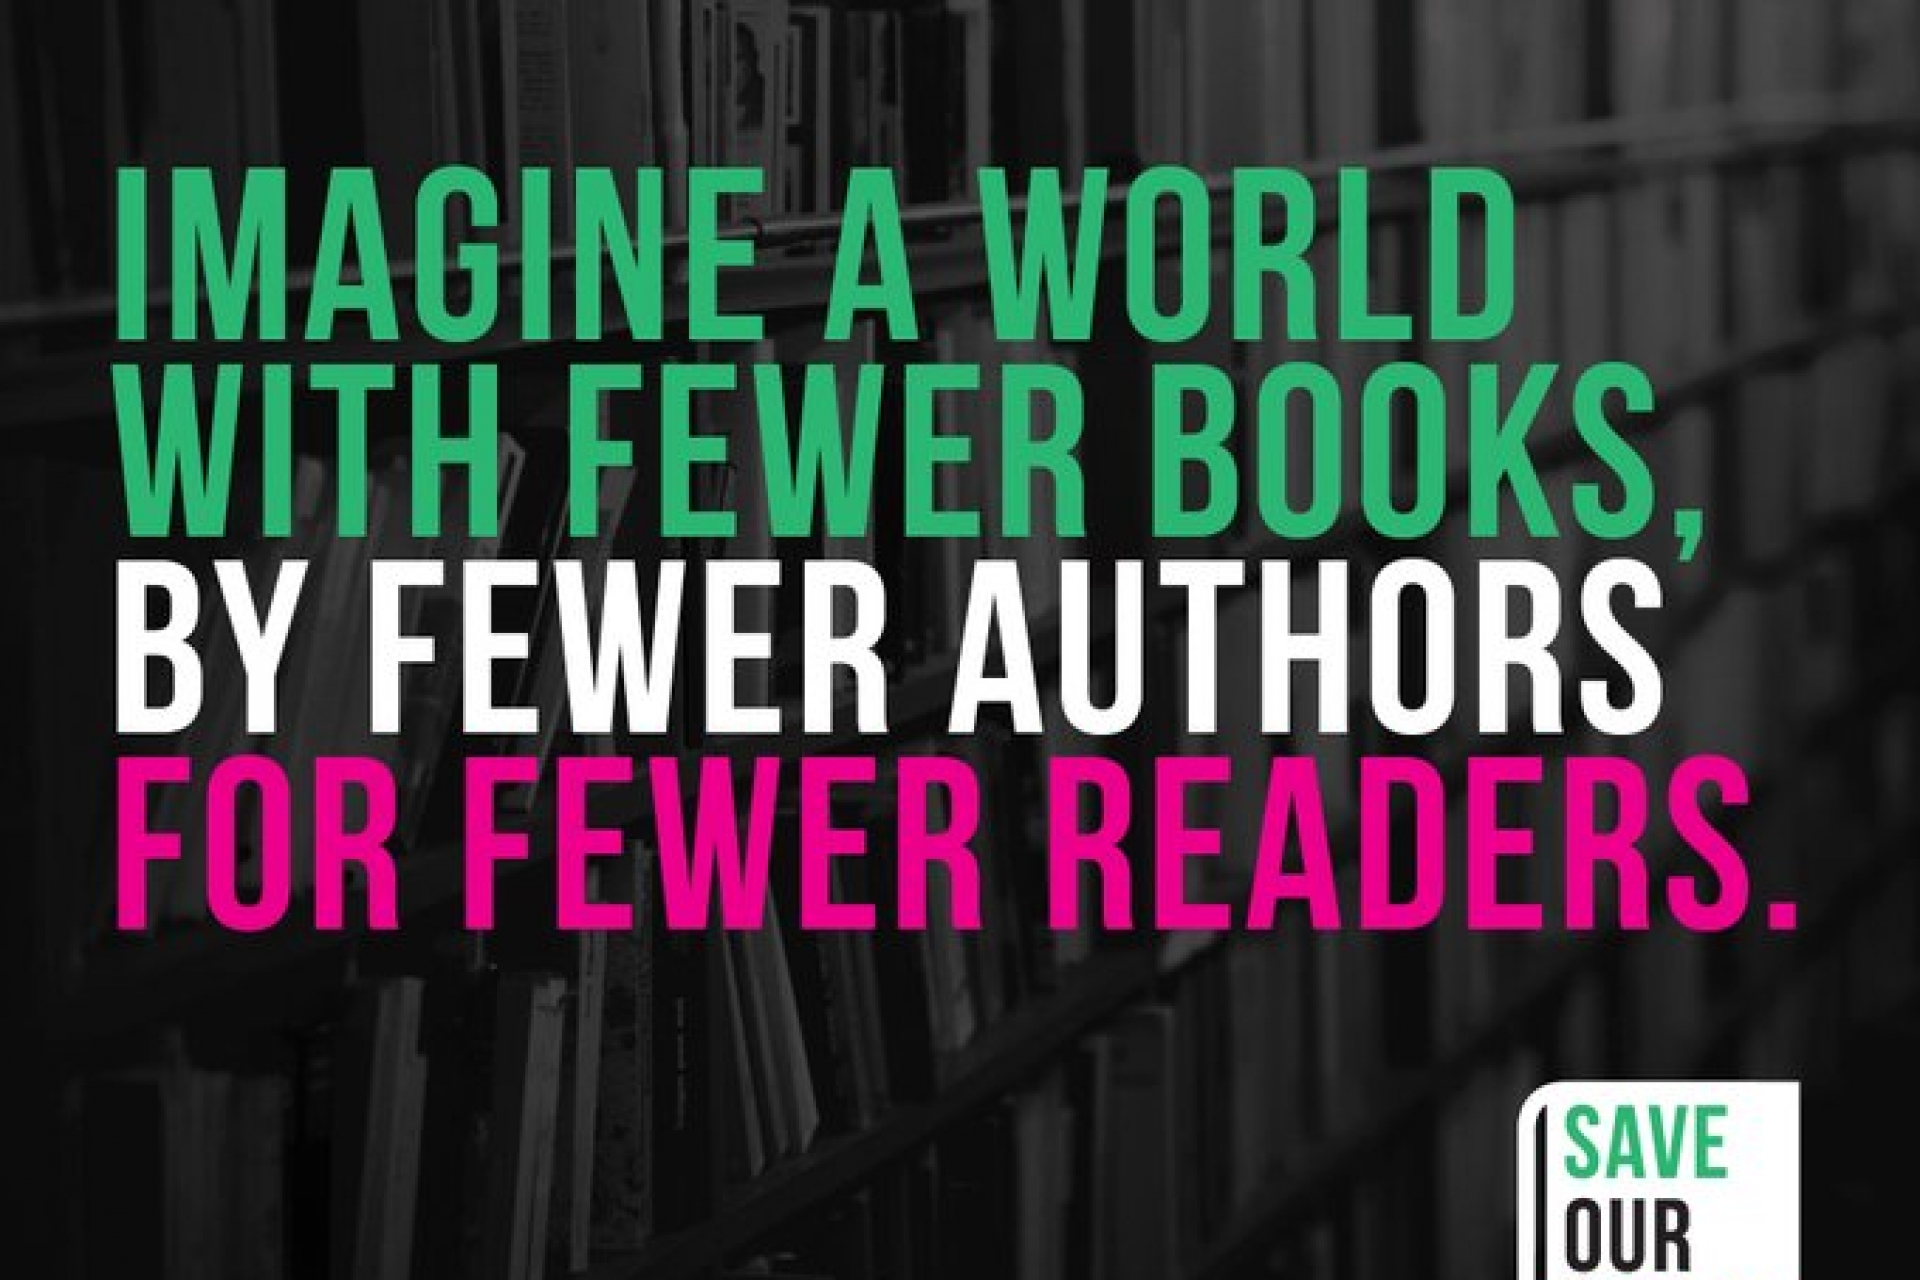 Save Our Books Campaign - Make the right call on copyright